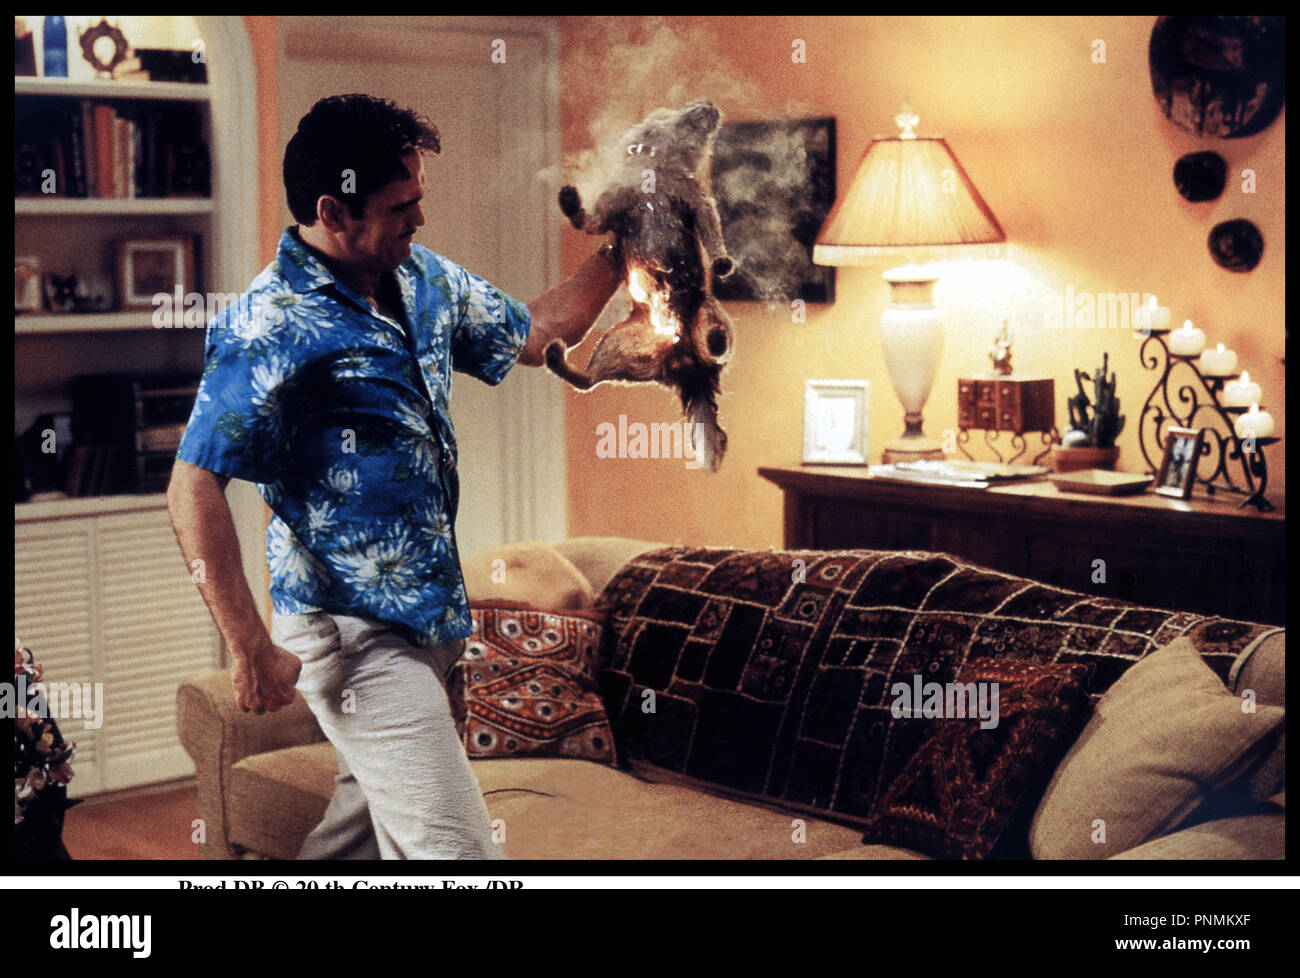 Prod DB © 20 th Century Fox /DR MARY A TOUT PRIX (THERE'S SOMETHING ABOUT MARY) de Bobby et Peter Farrelly 1998 USA avec Matt Dillon faire cuire un chien, faire du mal a un animal, cruel, barbare, chemise ˆ fleur - Stock Image